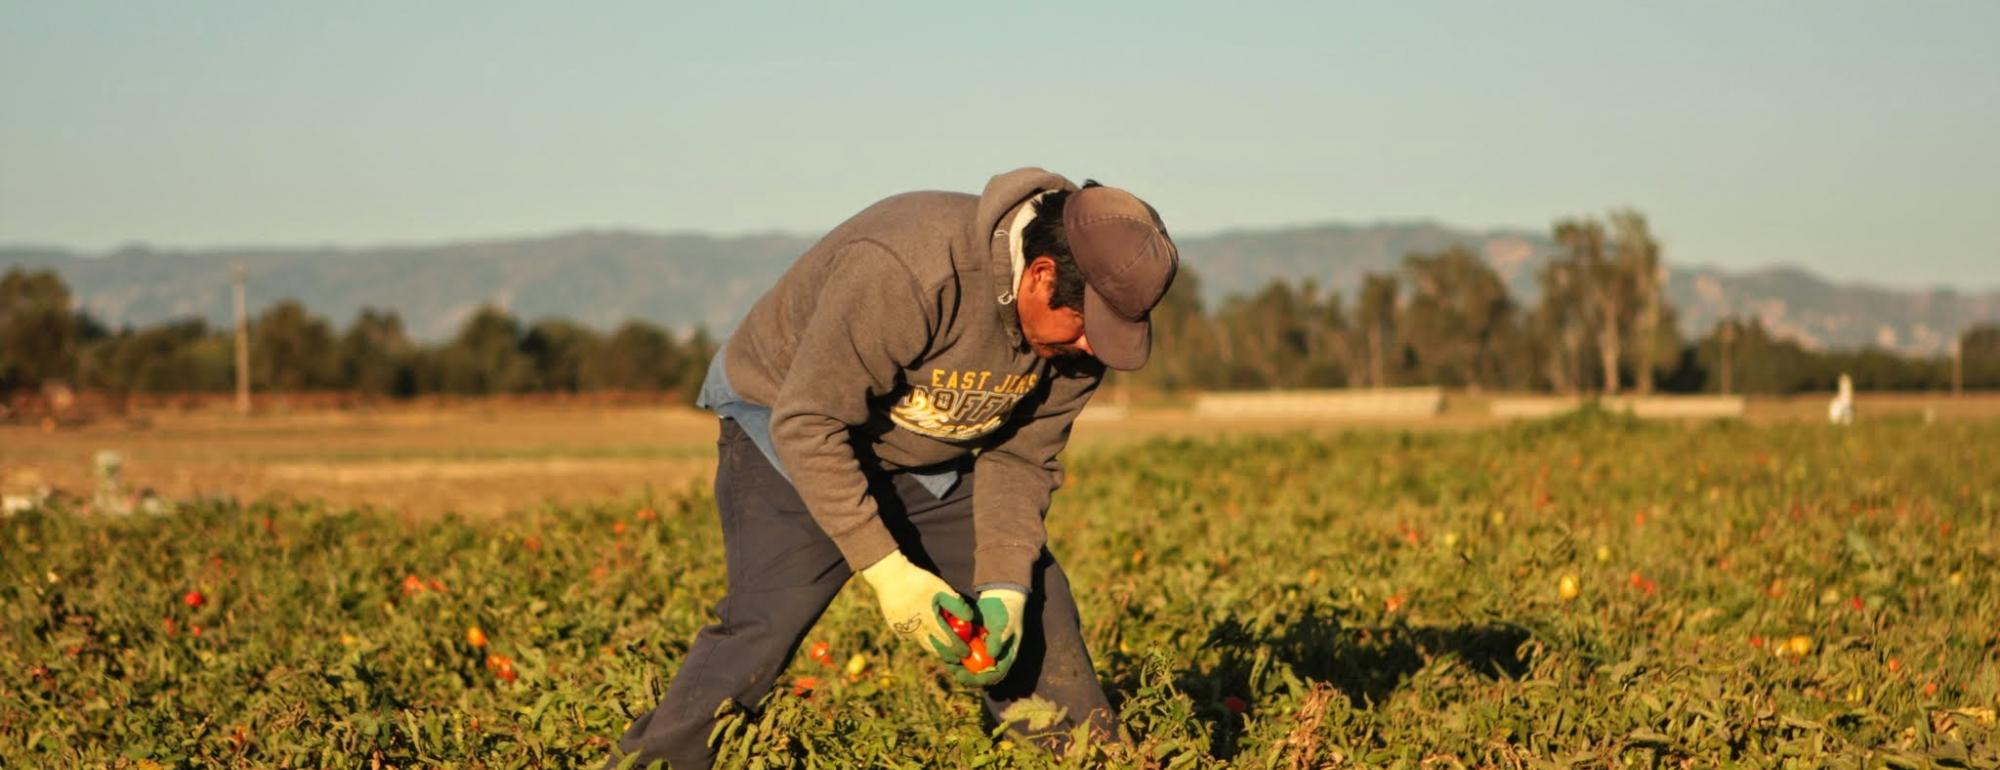 Farmworker in field of tomato plants